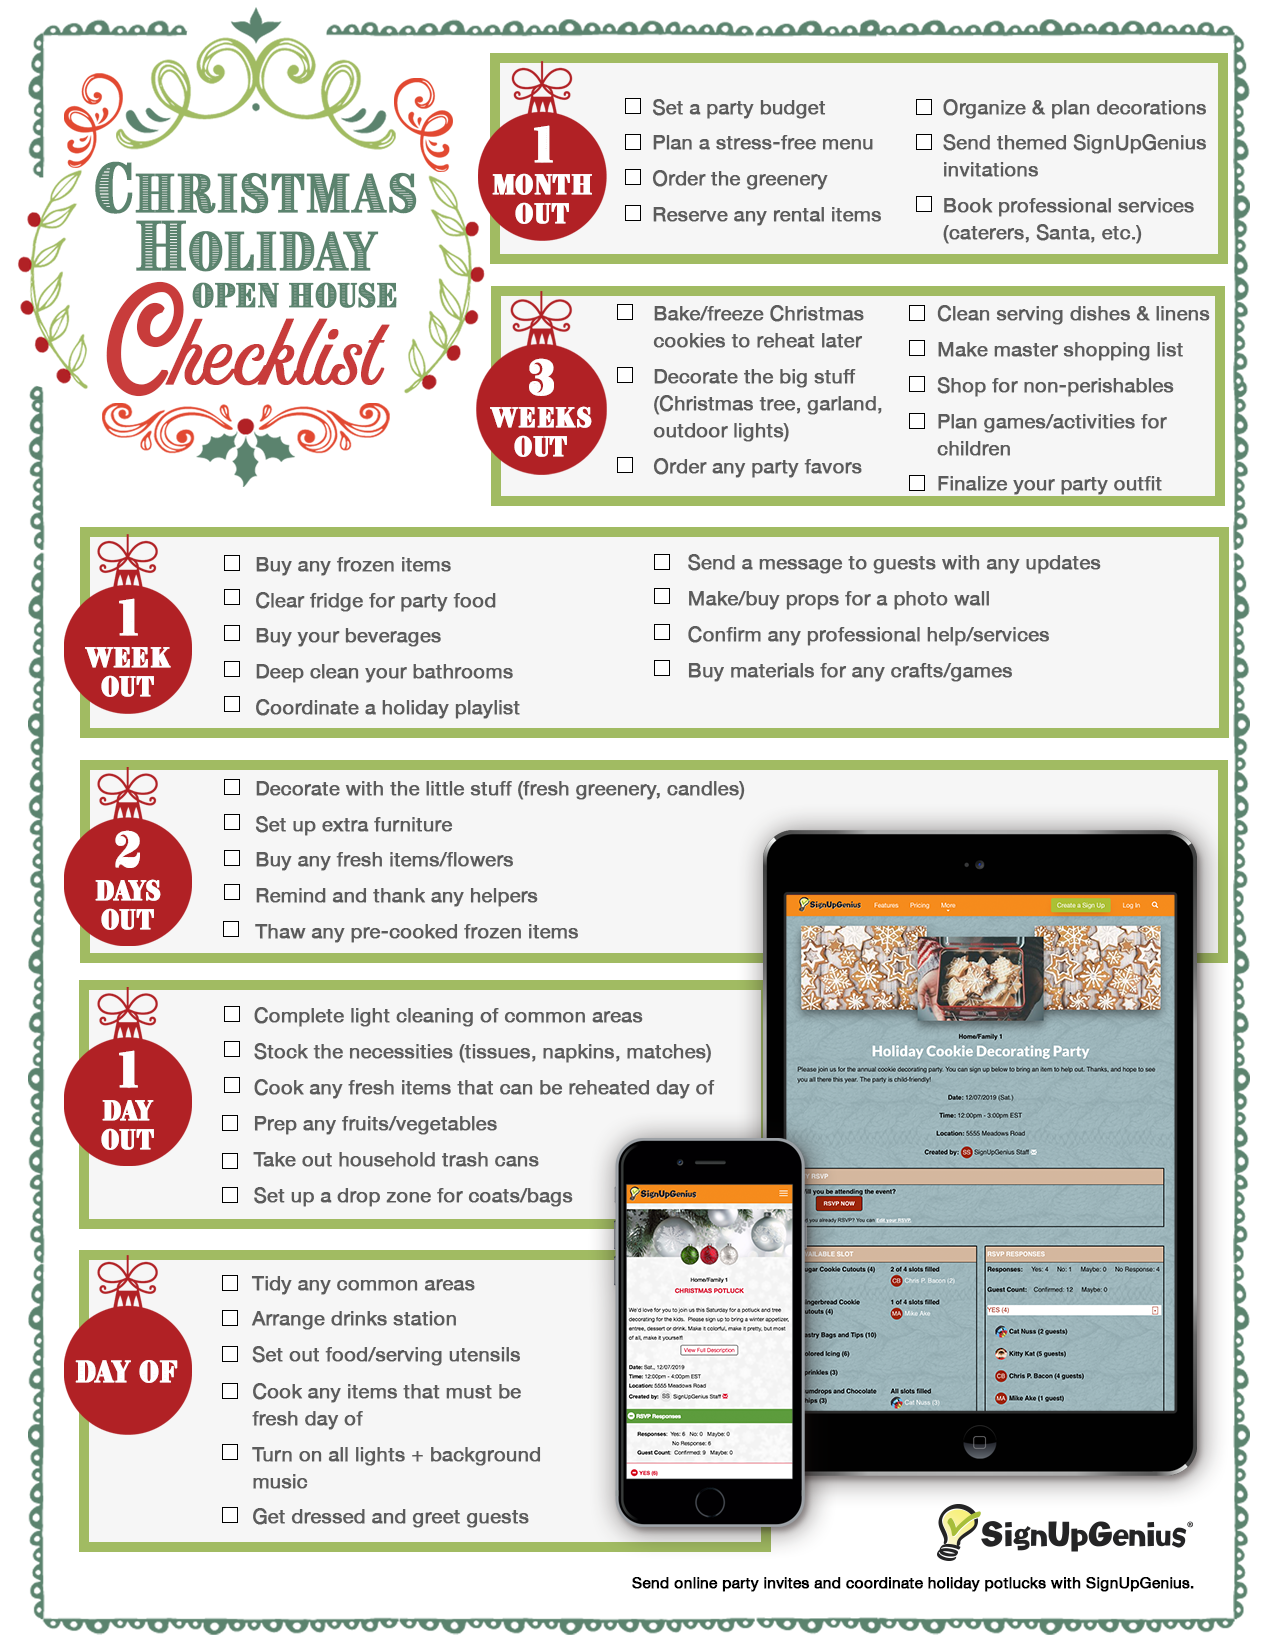 Free Printable Christmas Holiday Open House Checklist. Plan for ...